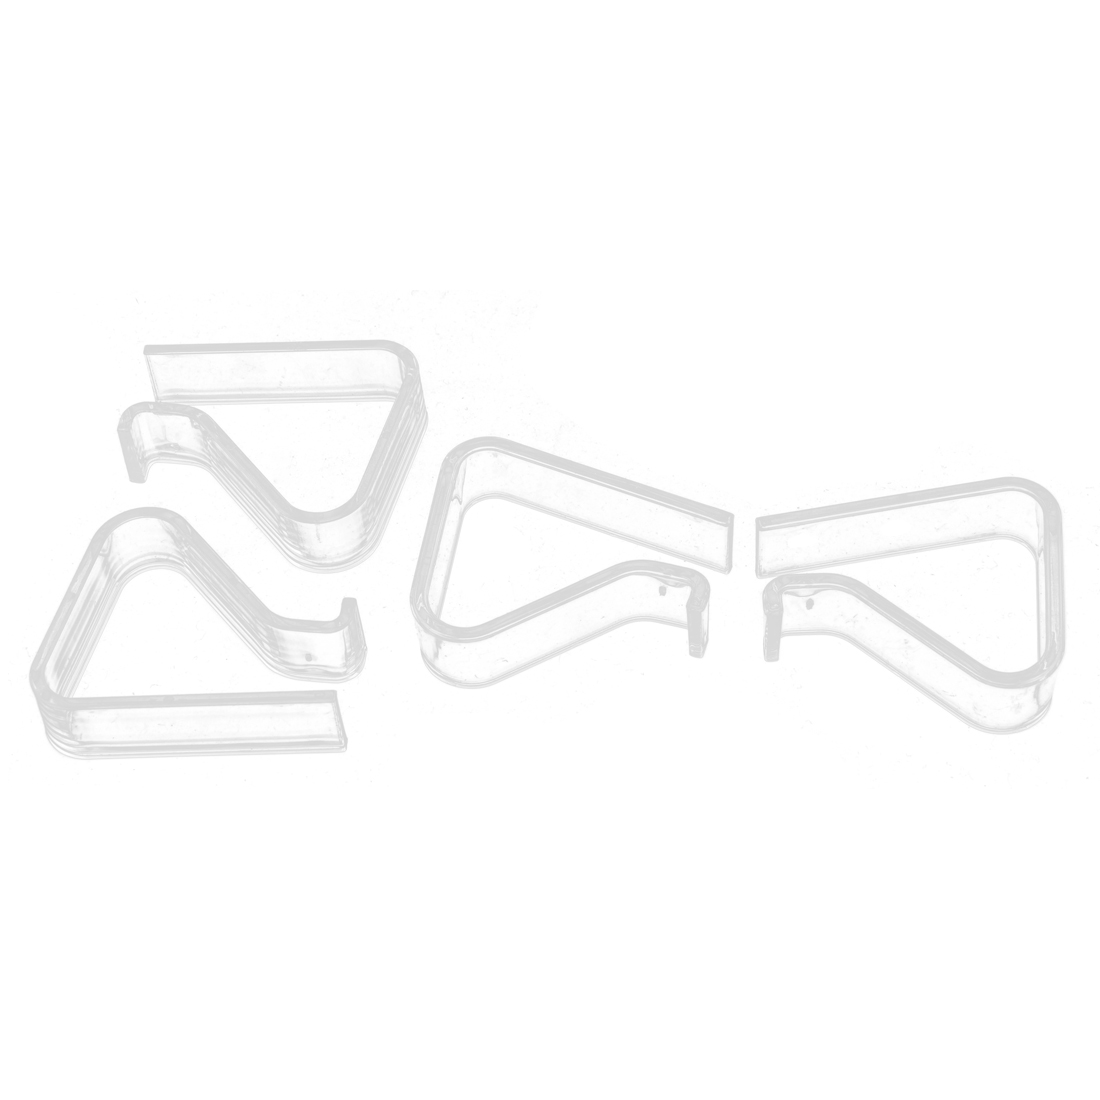 Wedding Party Picnic Clear Table Cover Tablecloth Clips Holder 4 Pcs